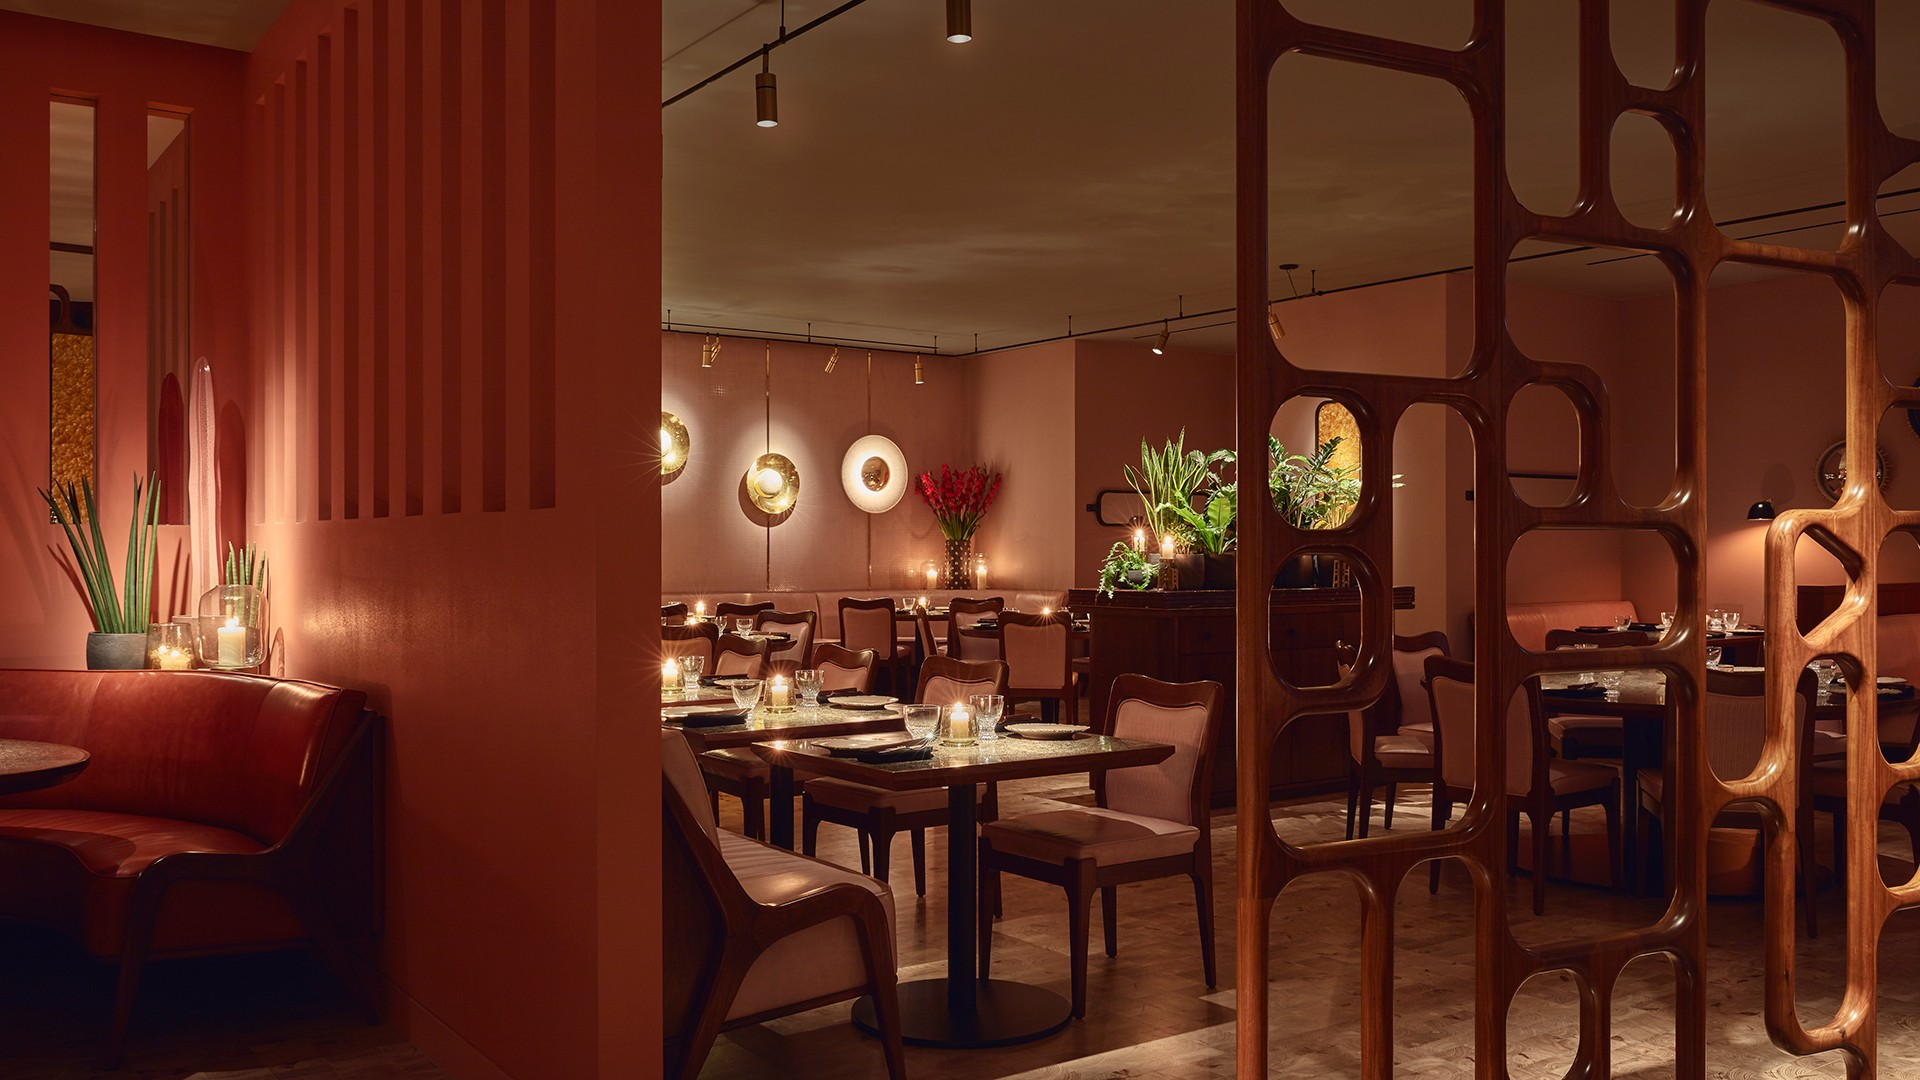 Inside Ella Canta, Mayfair